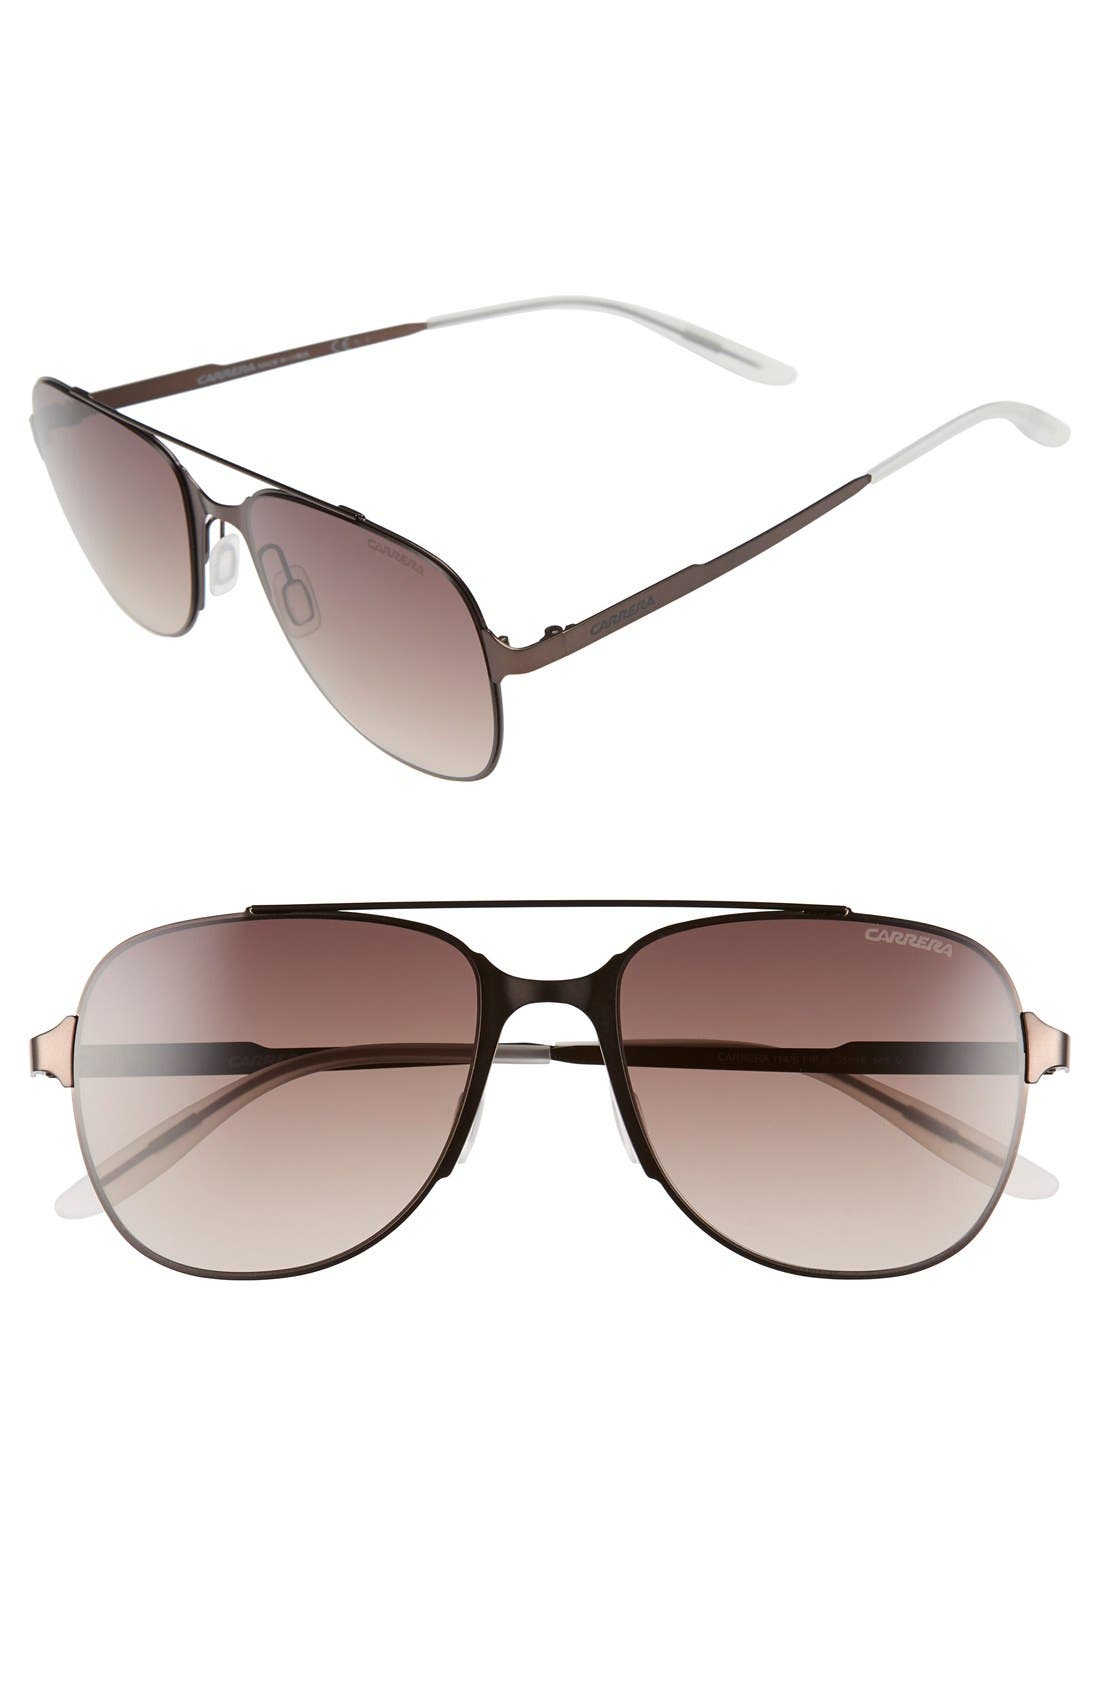 CARRERA EYEWEAR 114/S 55mm Sunglasses